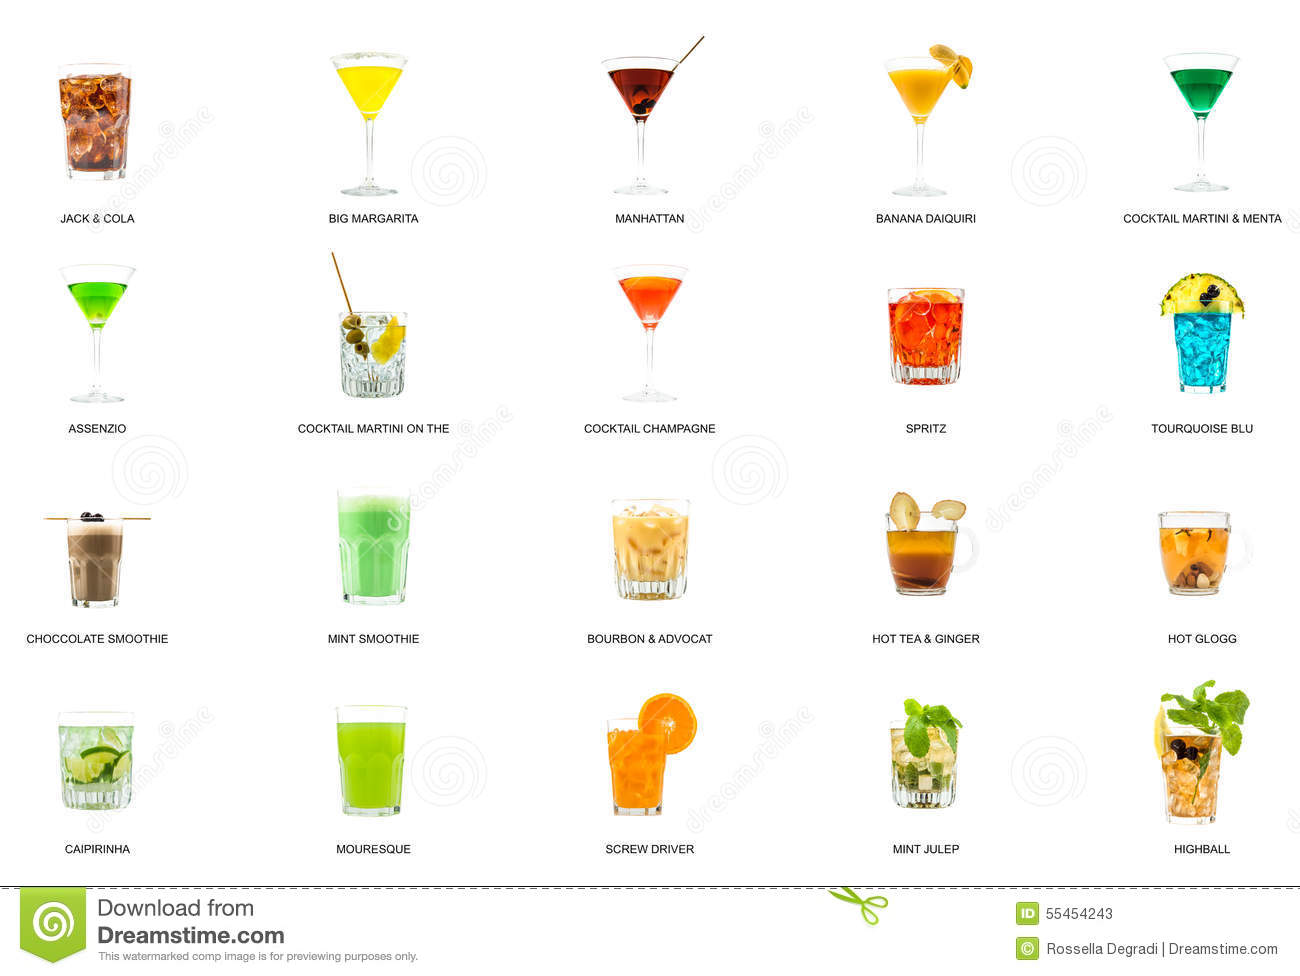 Name Of All Alcoholic Drinks